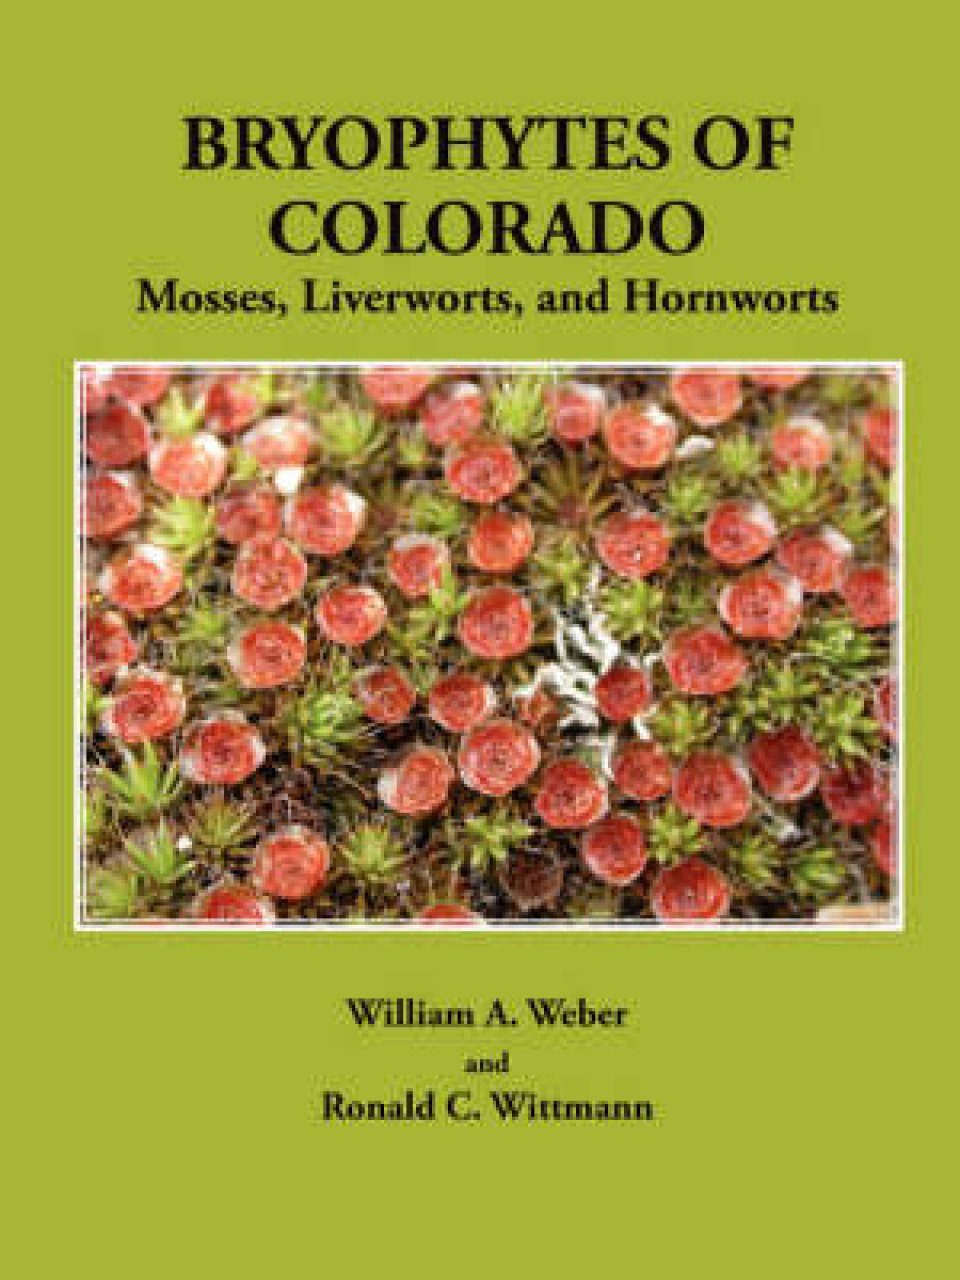 Bryophytes of Colorado